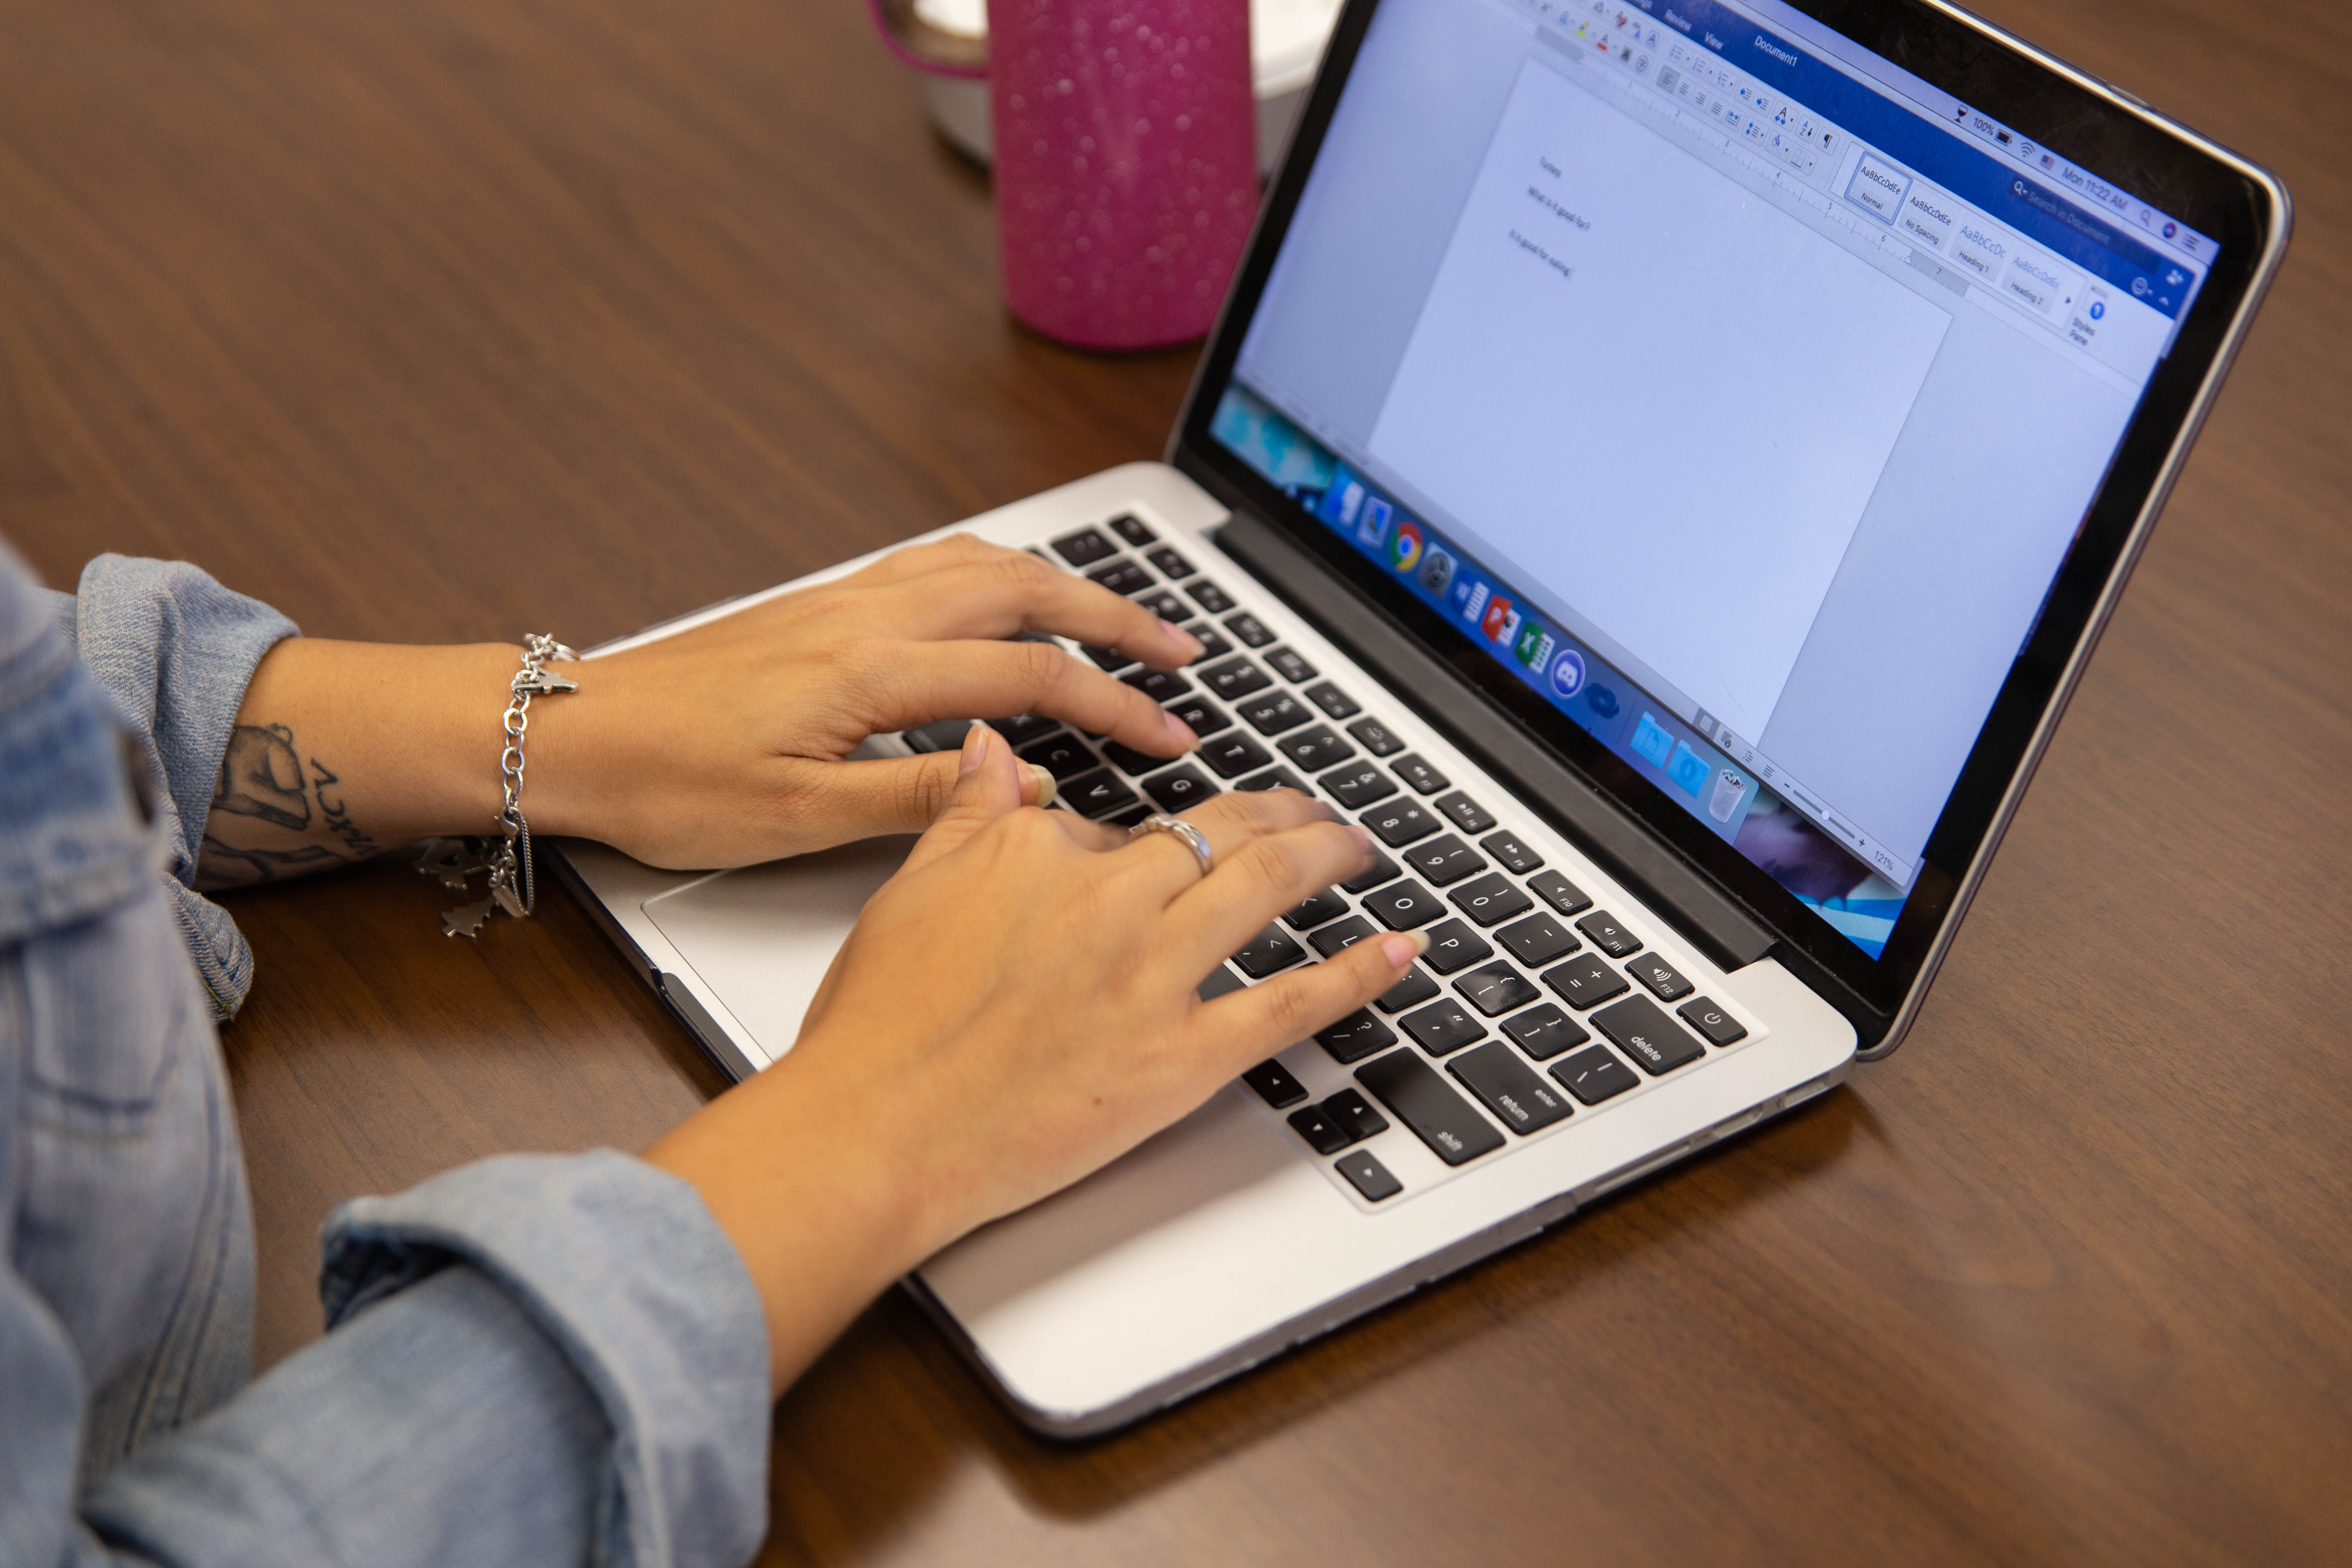 A student typing on her laptop keyboard